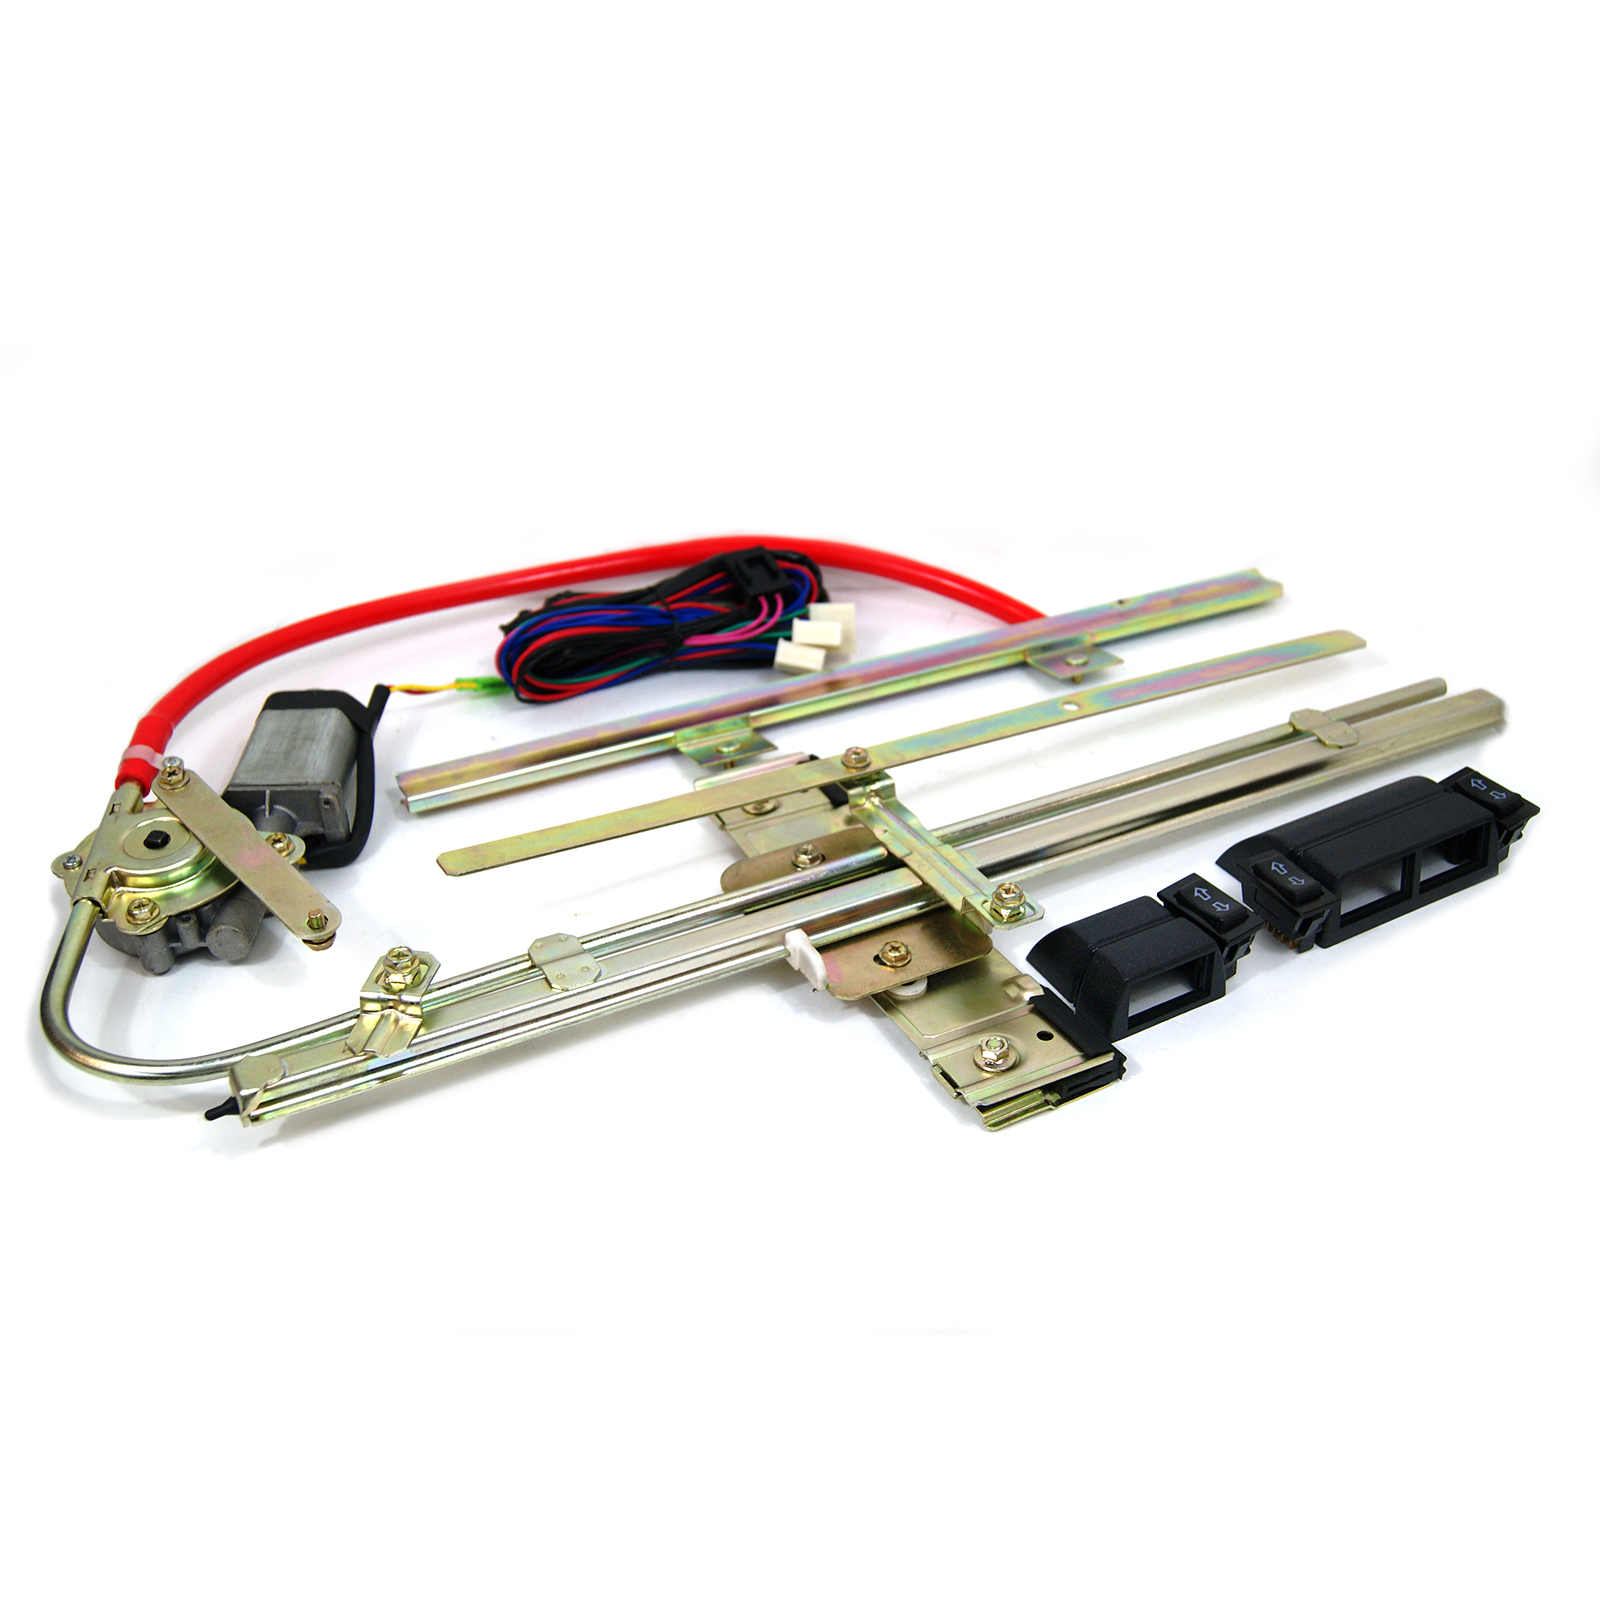 2 Door Flat Glass Power Window Kit w/ Switches